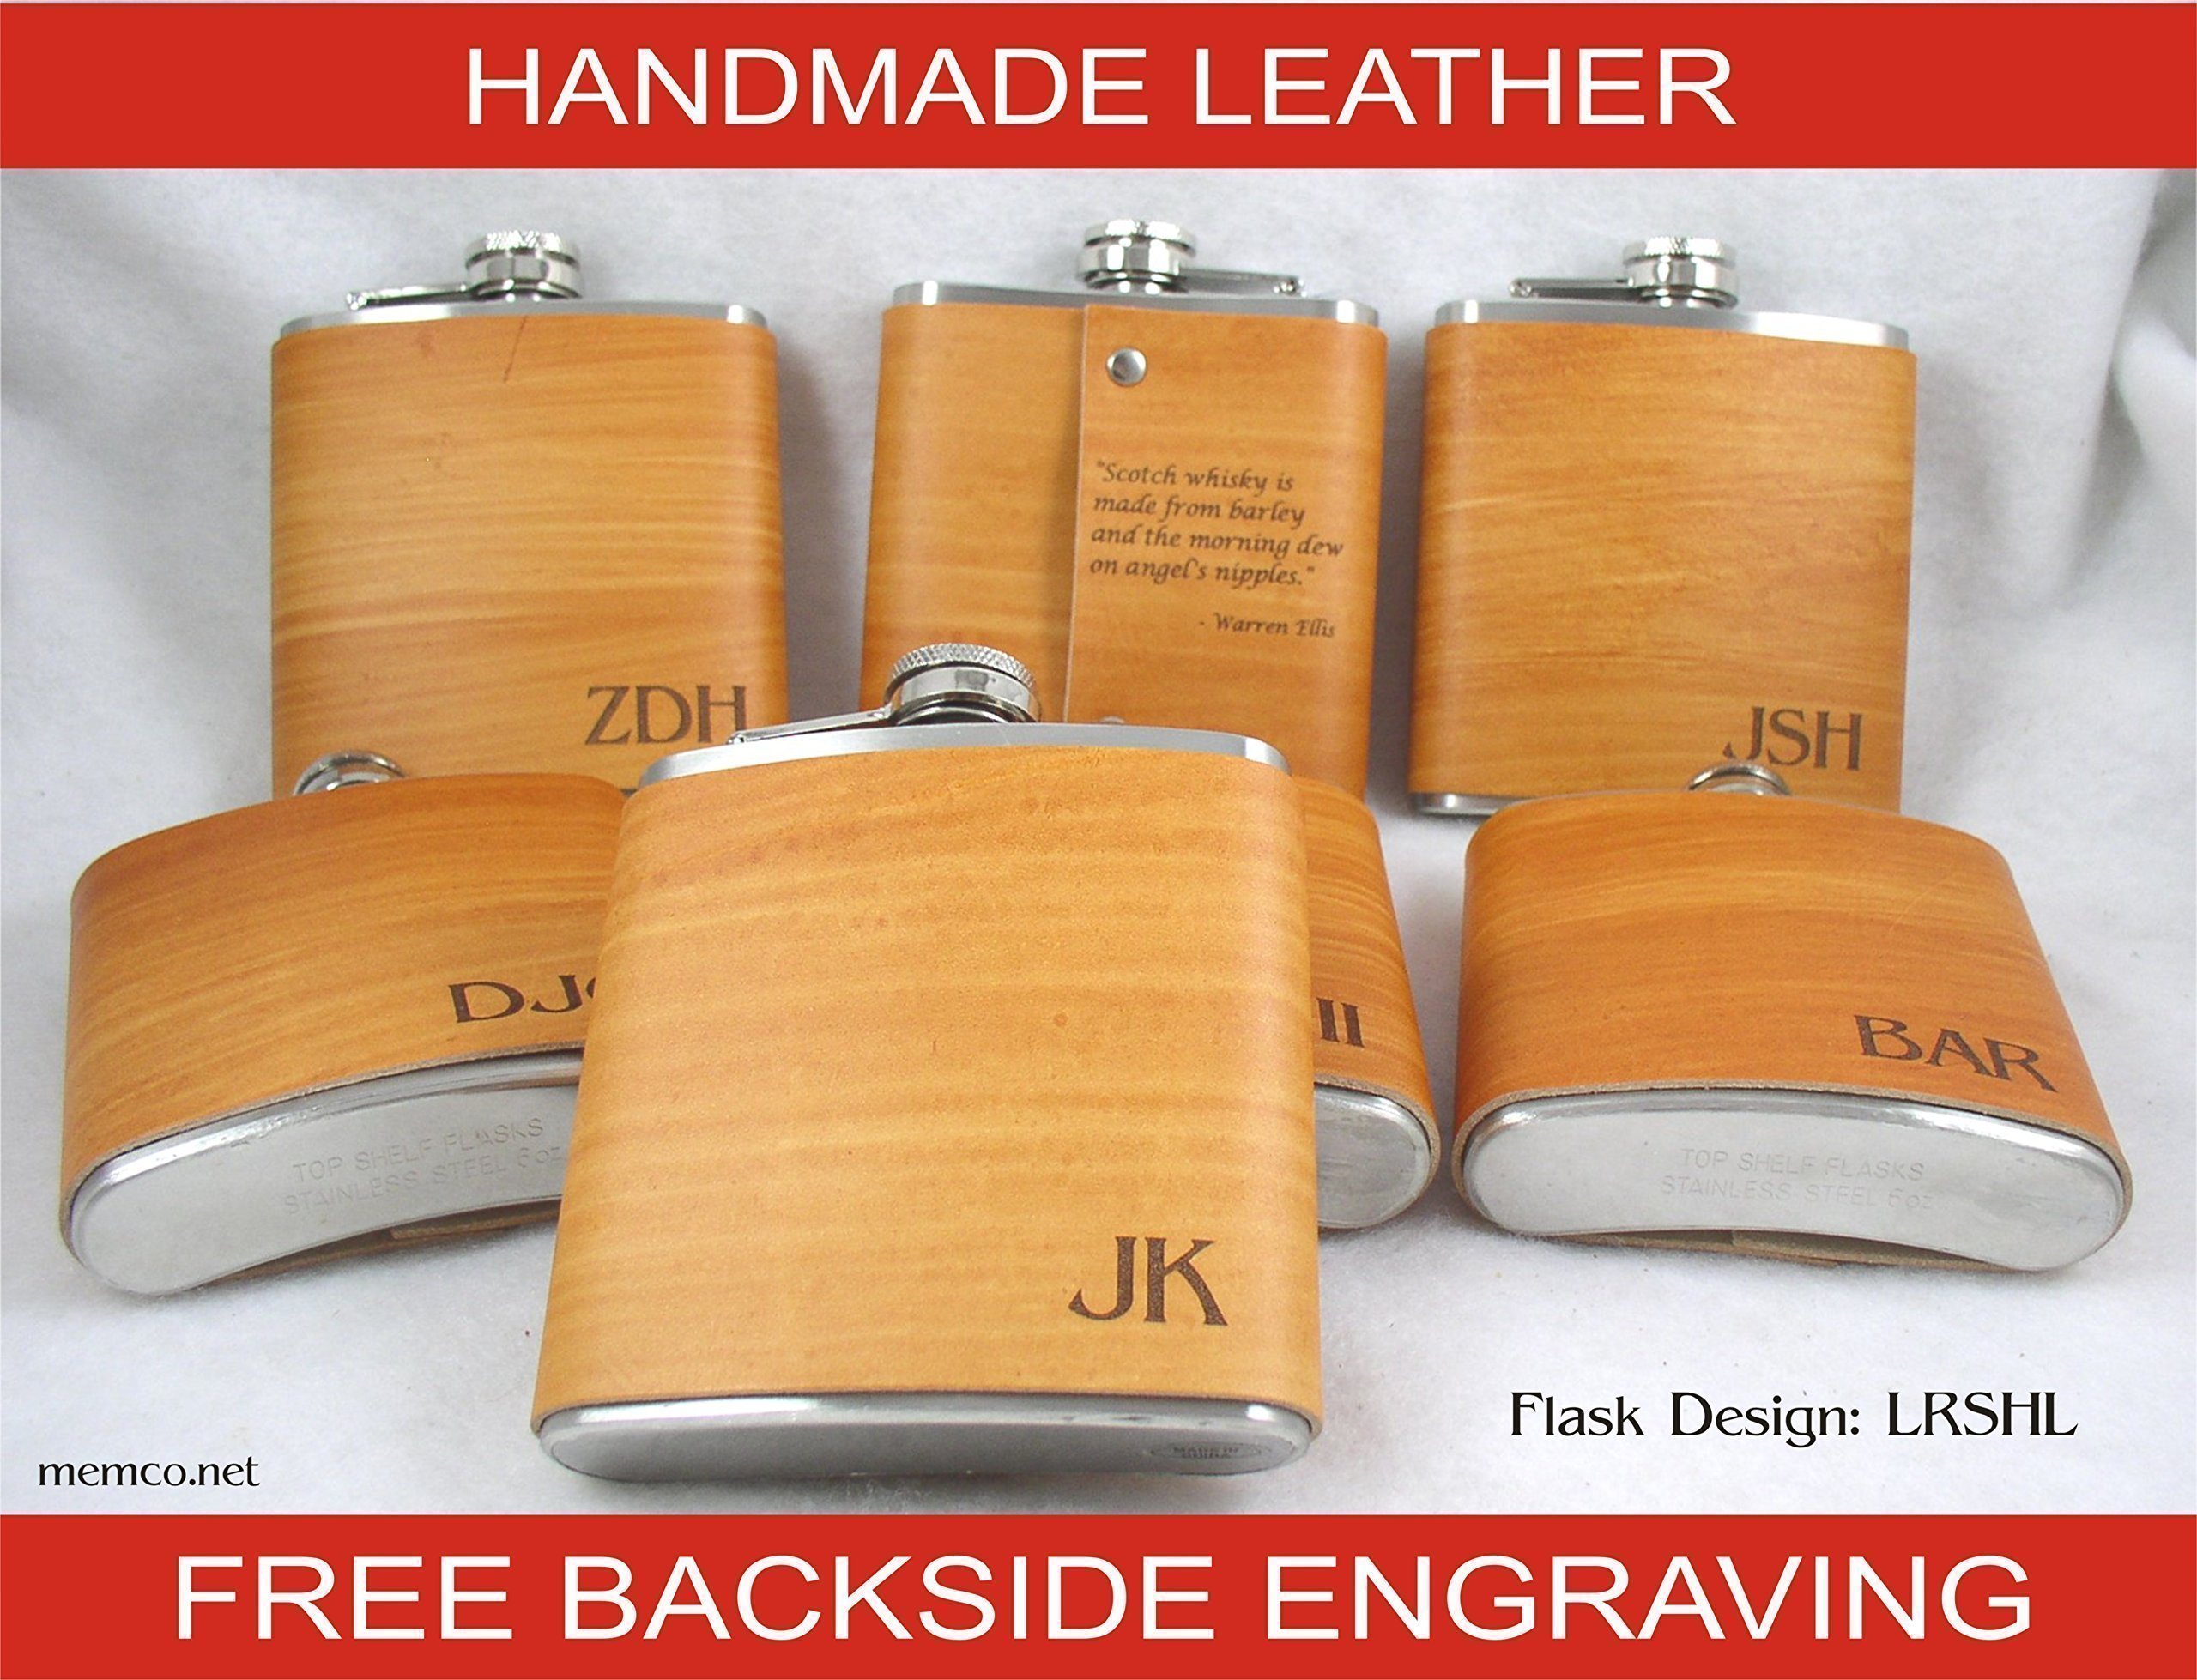 SET OF 5 Personalized Handmade Engraved Real Leather Flasks - Groomsmen Gifts